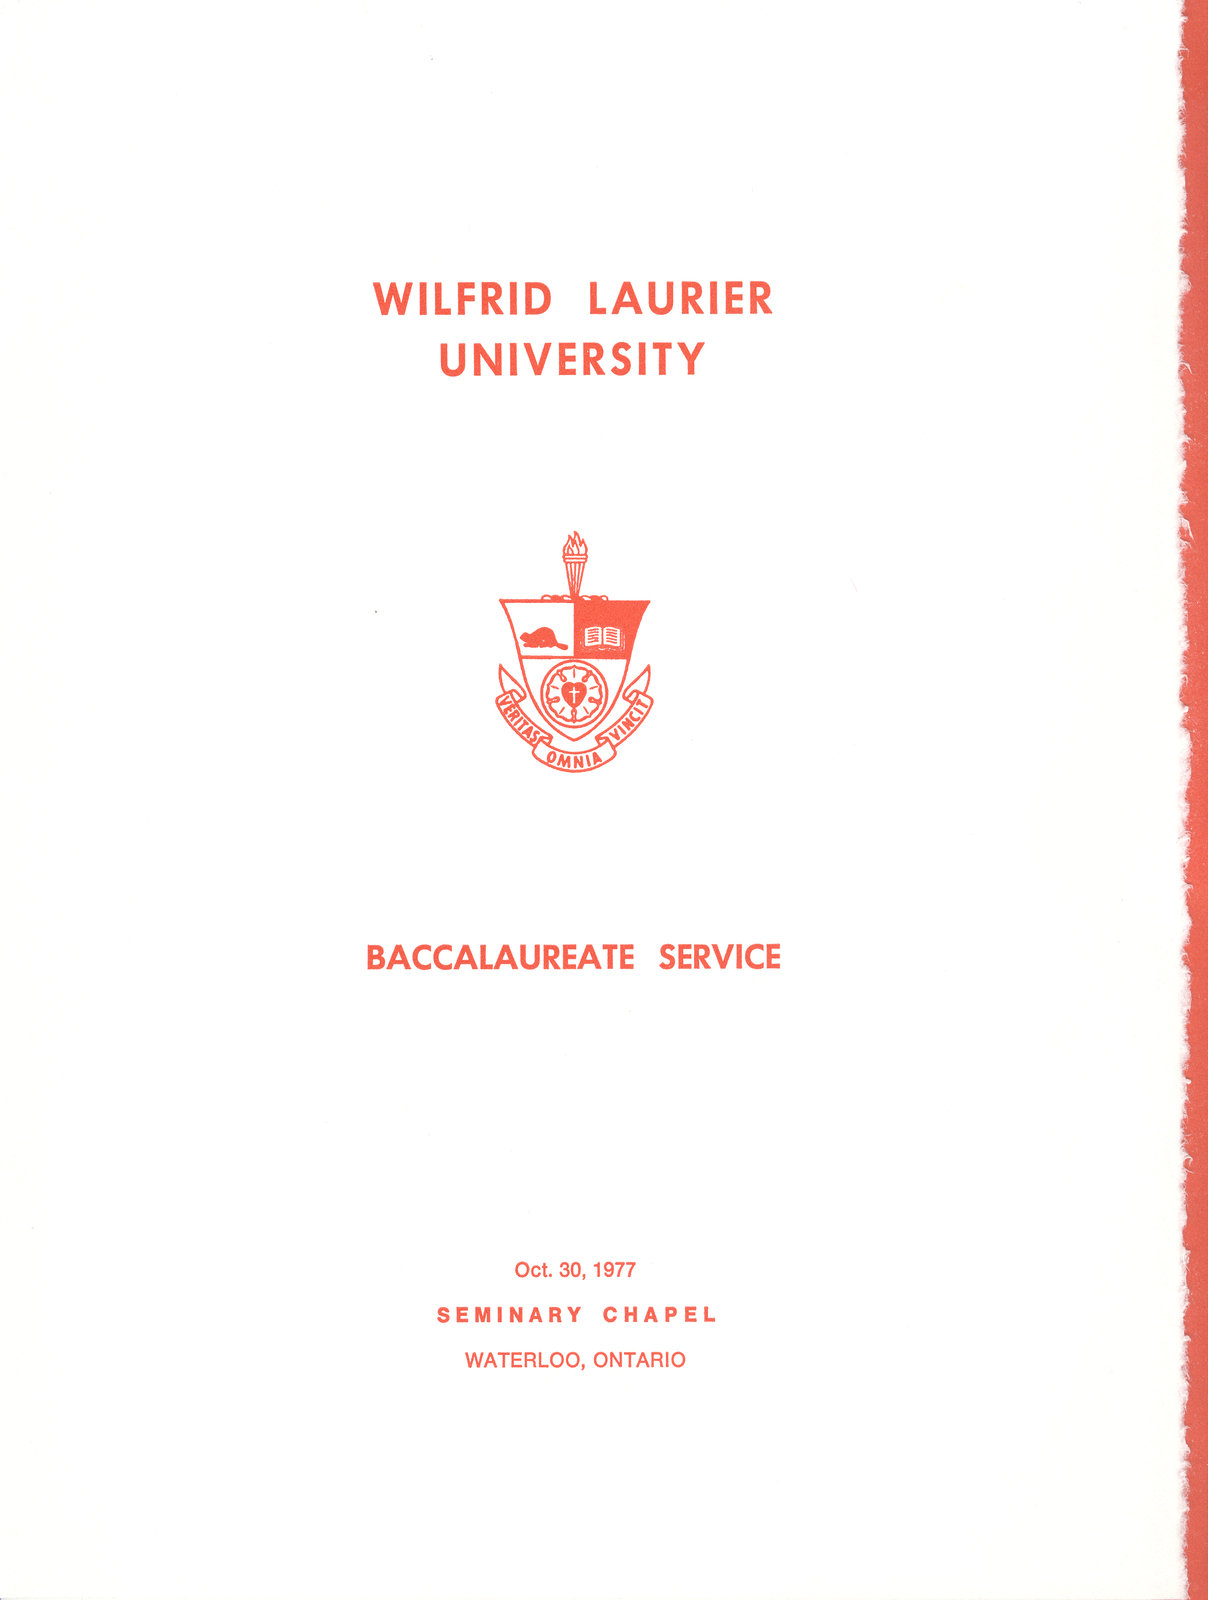 Wilfrid Laurier University baccalaureate service program, fall 1977